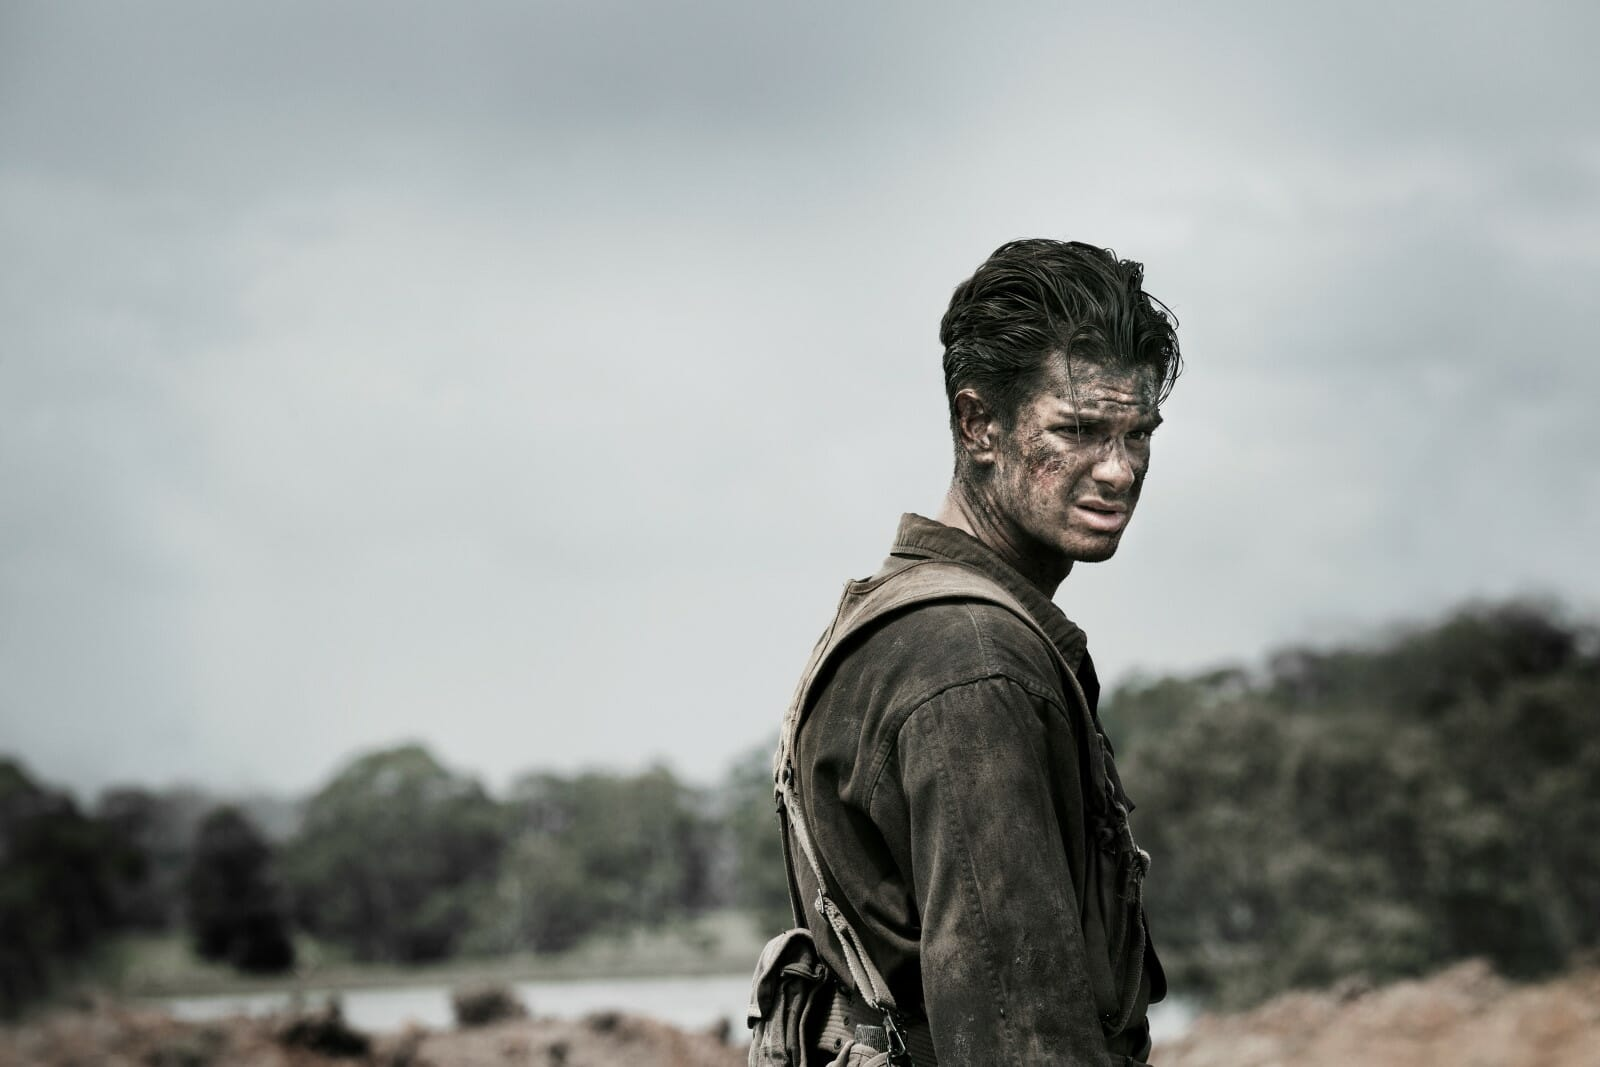 tu-ne-tueras-point-hacksaw-ridge-andrew-garfield